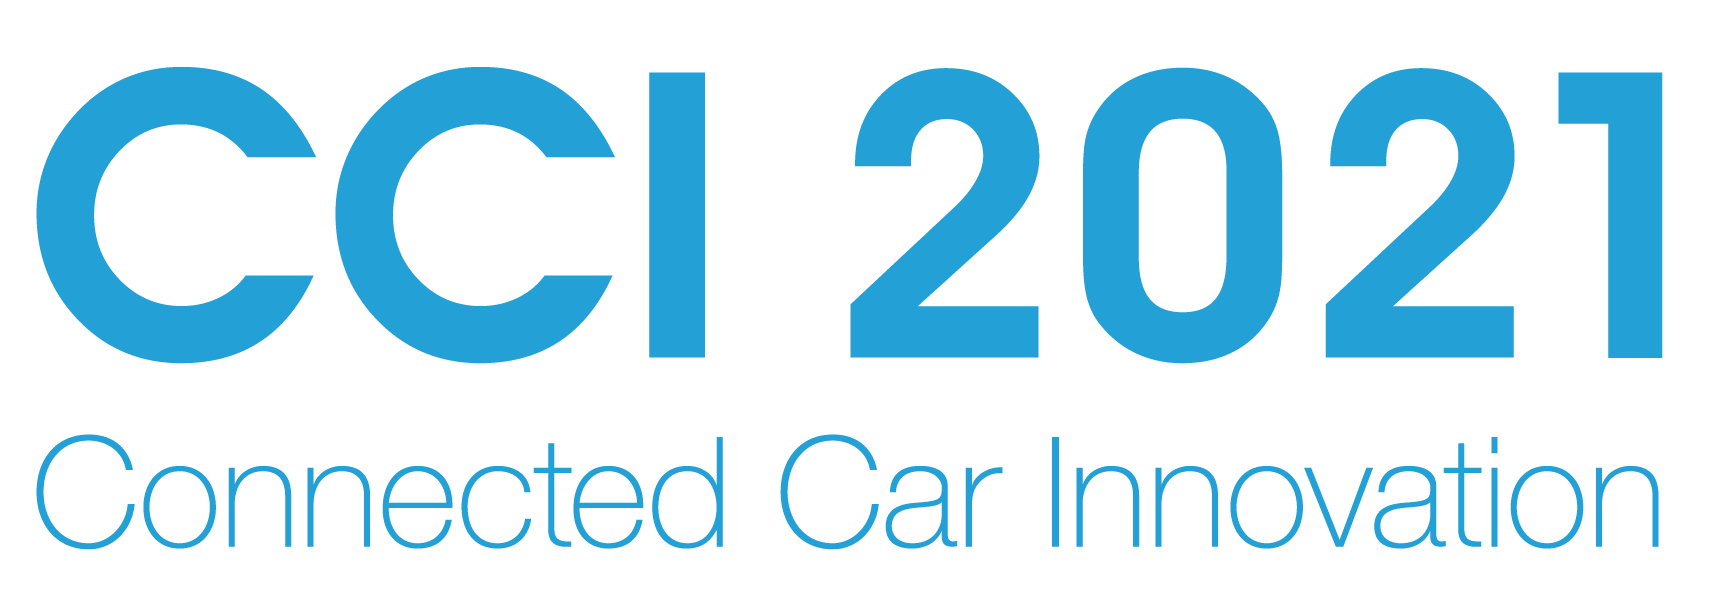 Connected Car Innovation Index